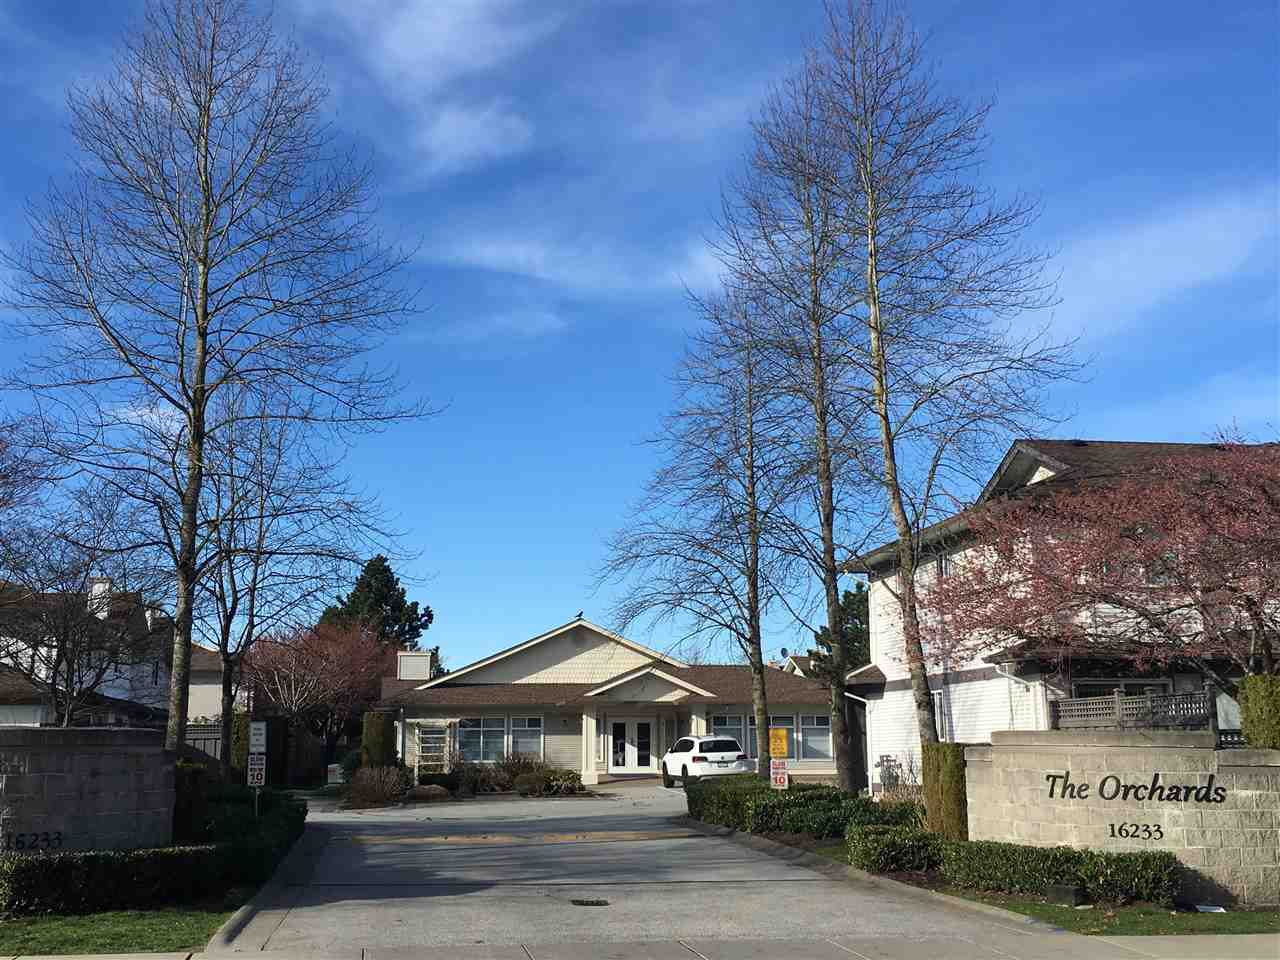 "Main Photo: 403 16233 82 Avenue in Surrey: Fleetwood Tynehead Townhouse for sale in ""The Orchards"" : MLS®# R2351845"